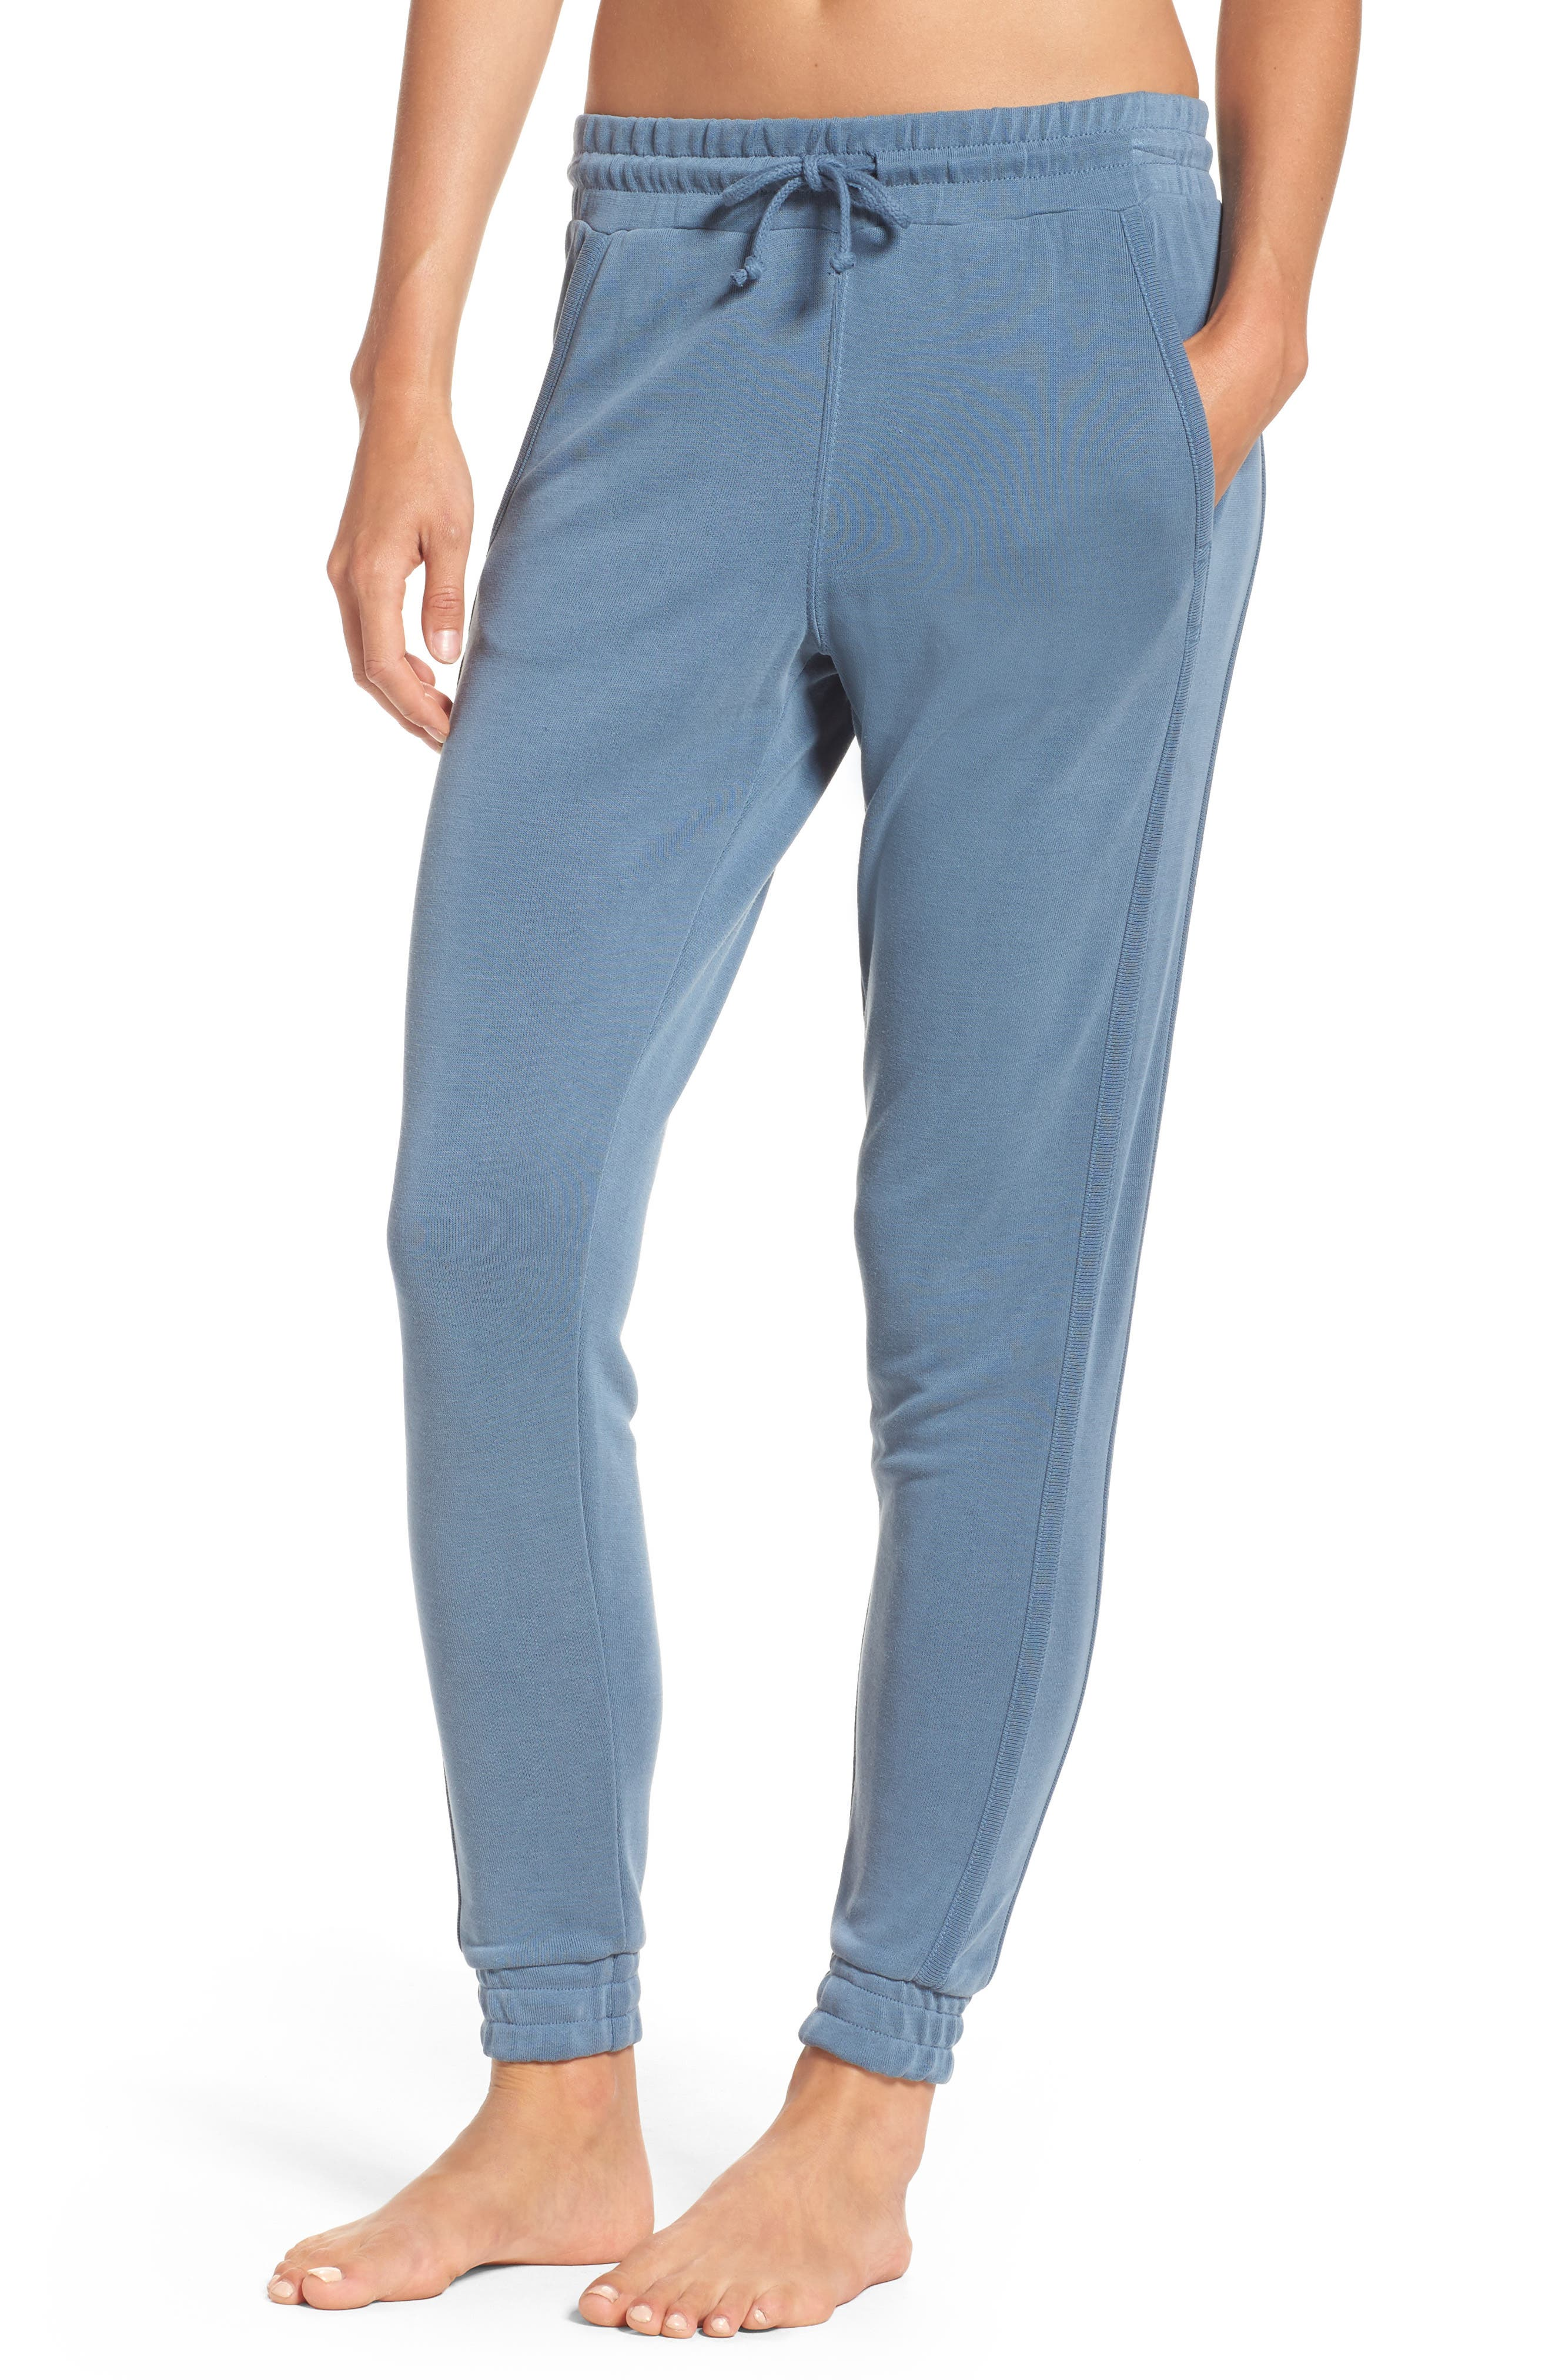 FP Movement Back Into It Joggers,                         Main,                         color, Blue